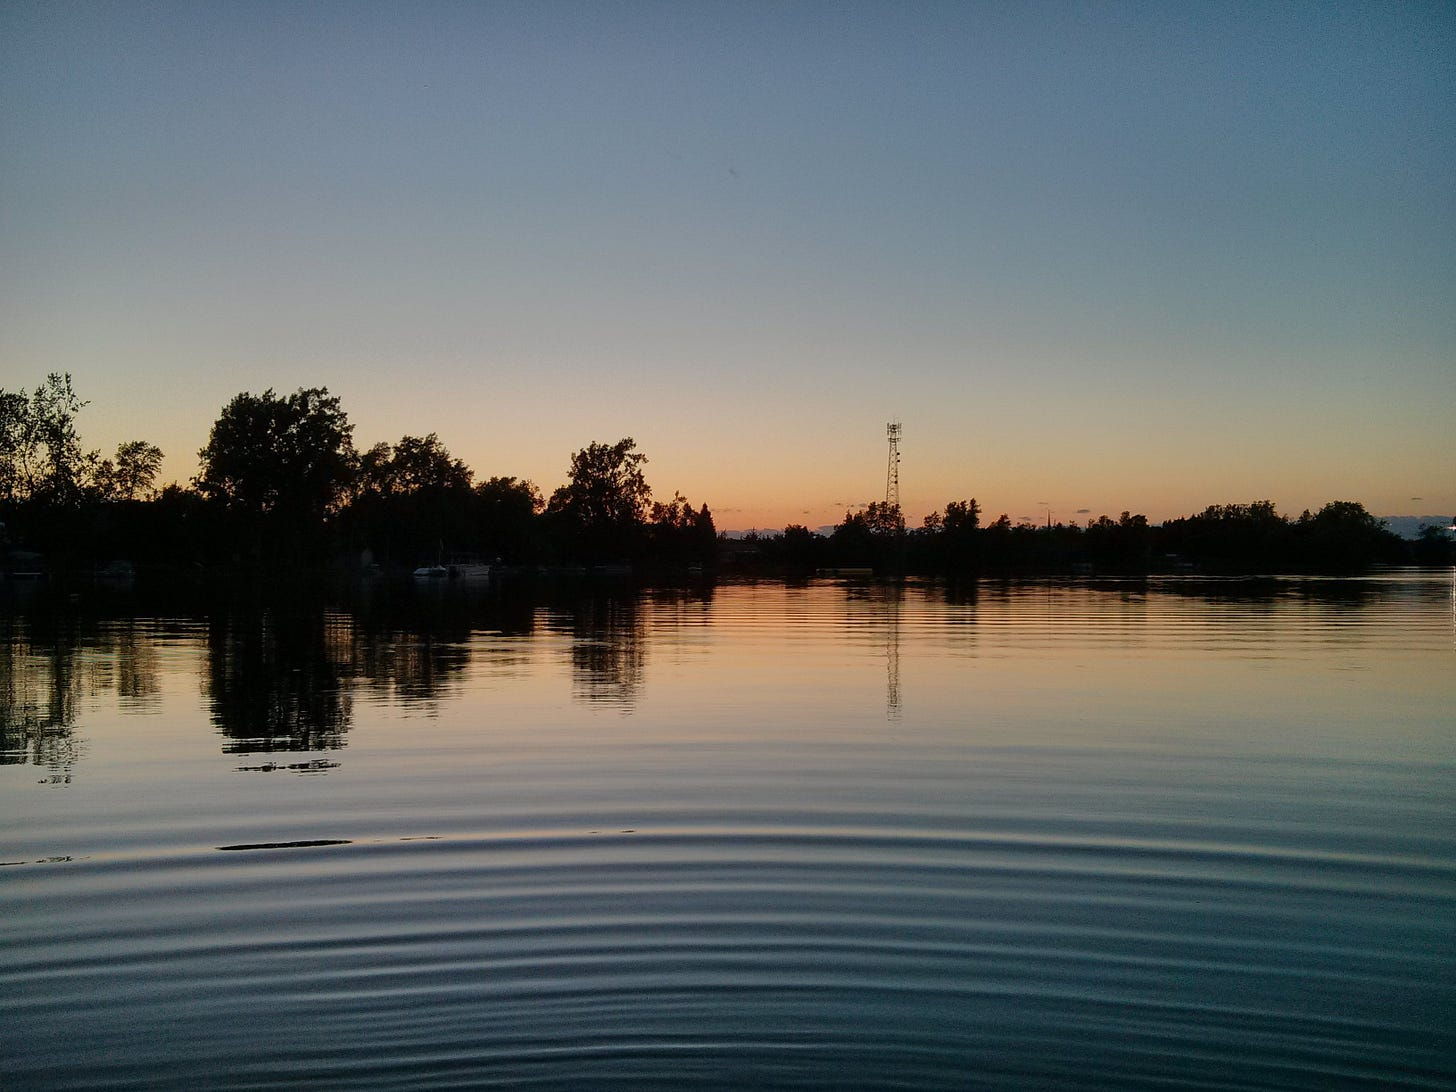 Water ripples out from the position of the camera lens on a lake at dusk, with trees and a cell tower in the distance.